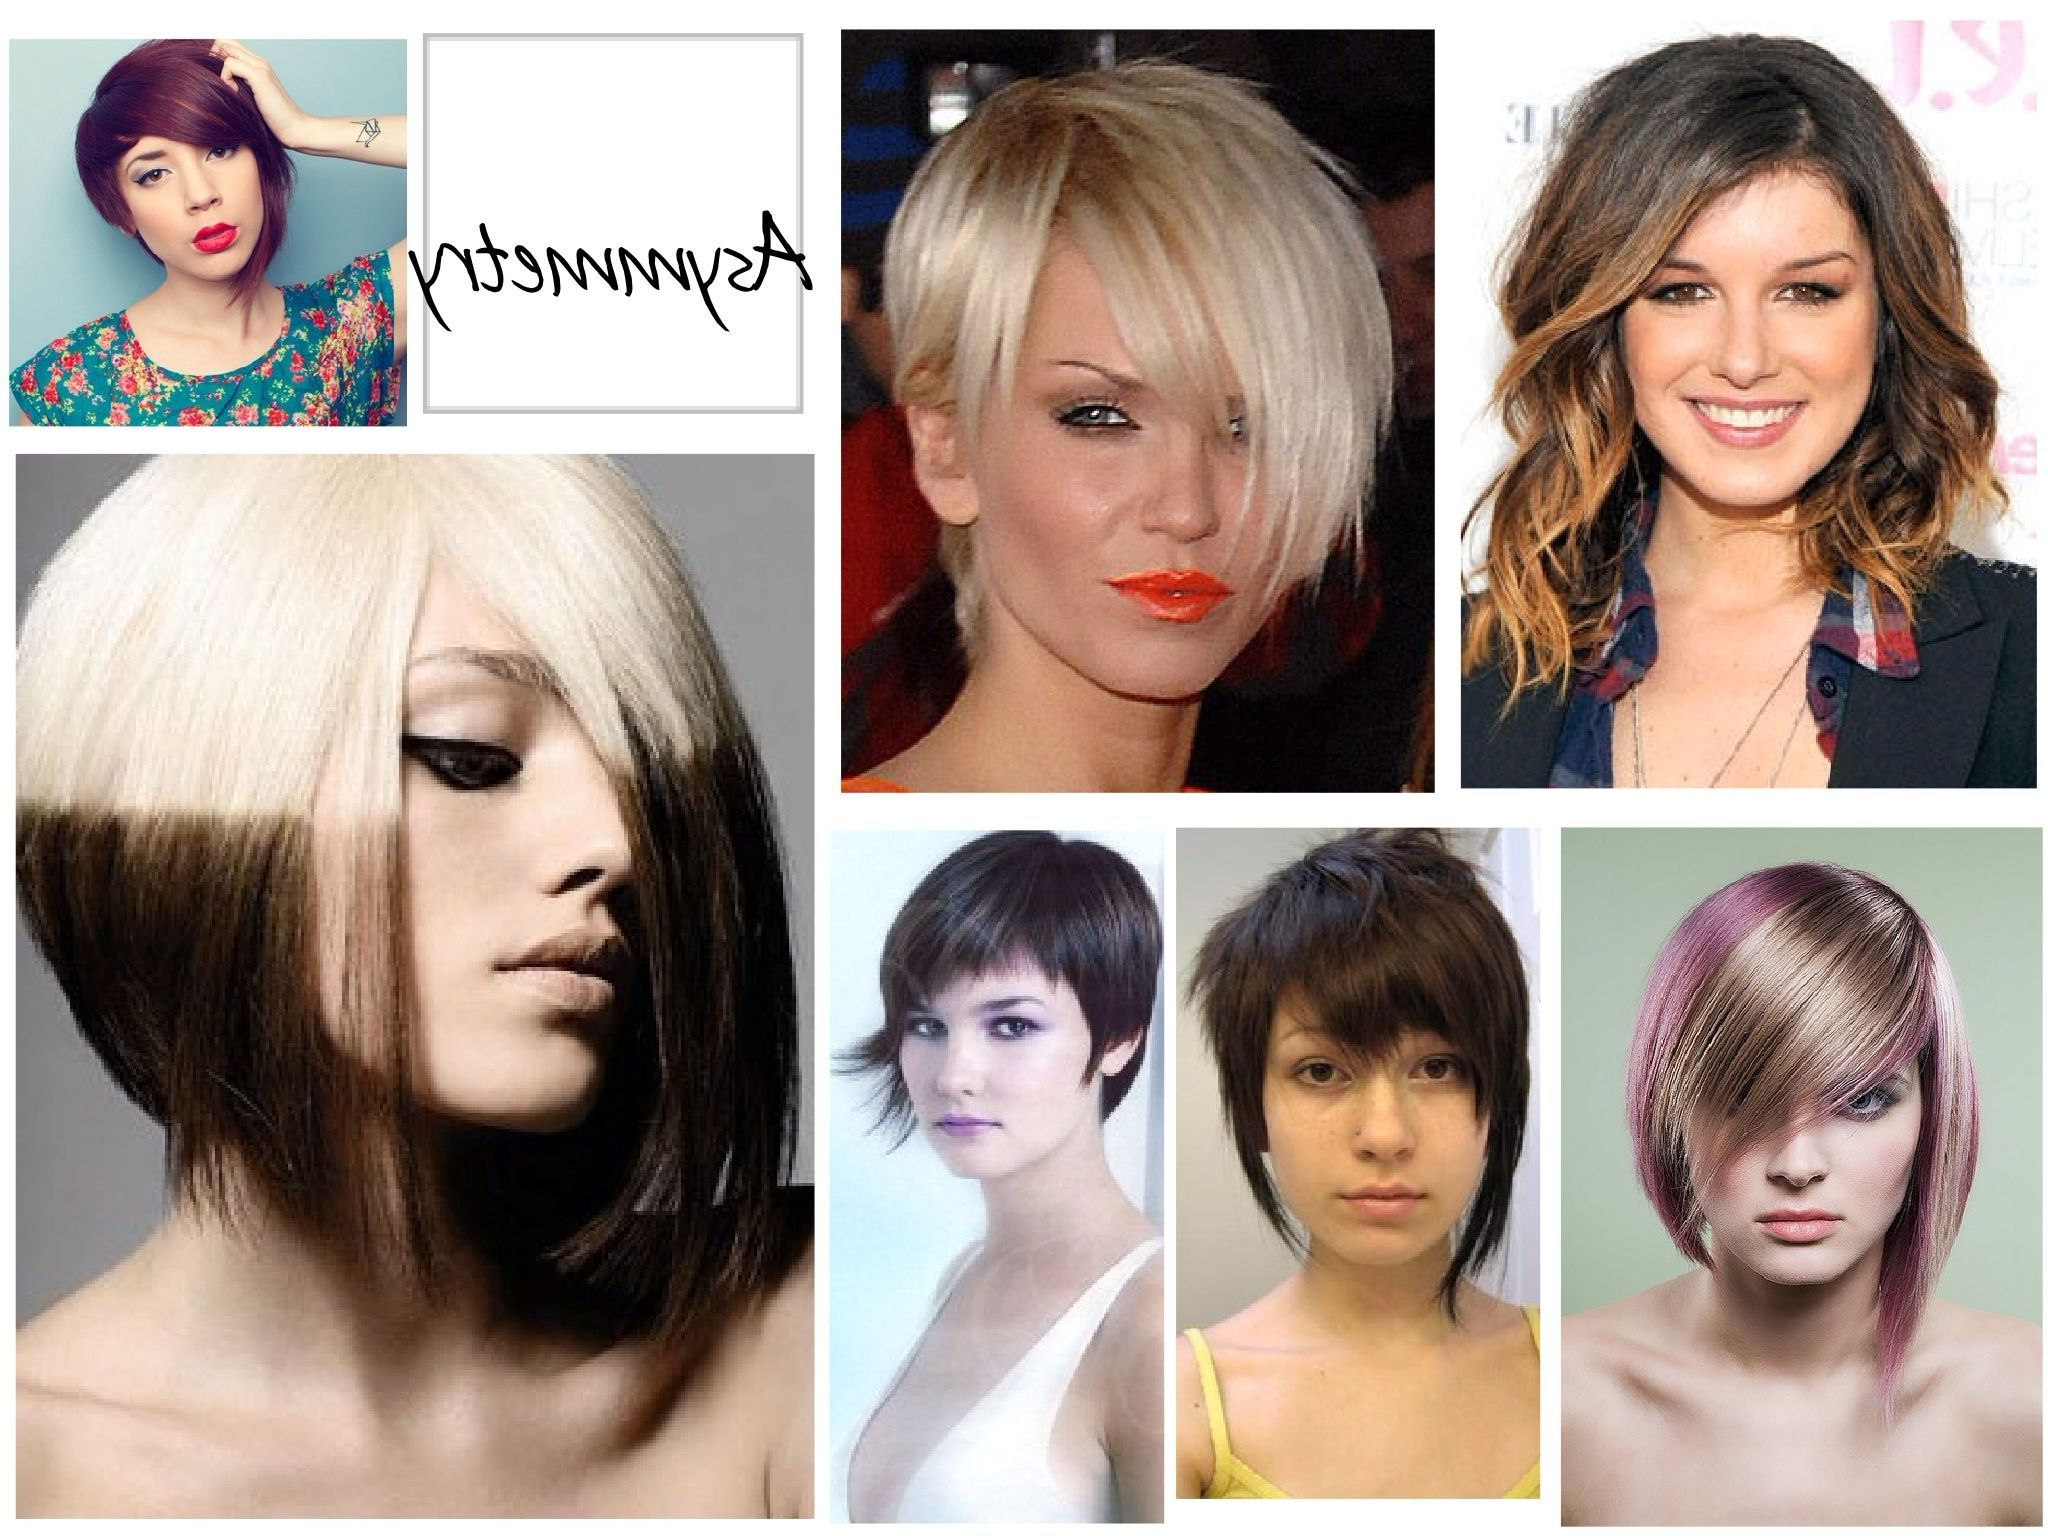 One Side Longer Than The Other! | Short Cuts We <3 | Pinterest for Short Haircuts With One Side Longer Than The Other